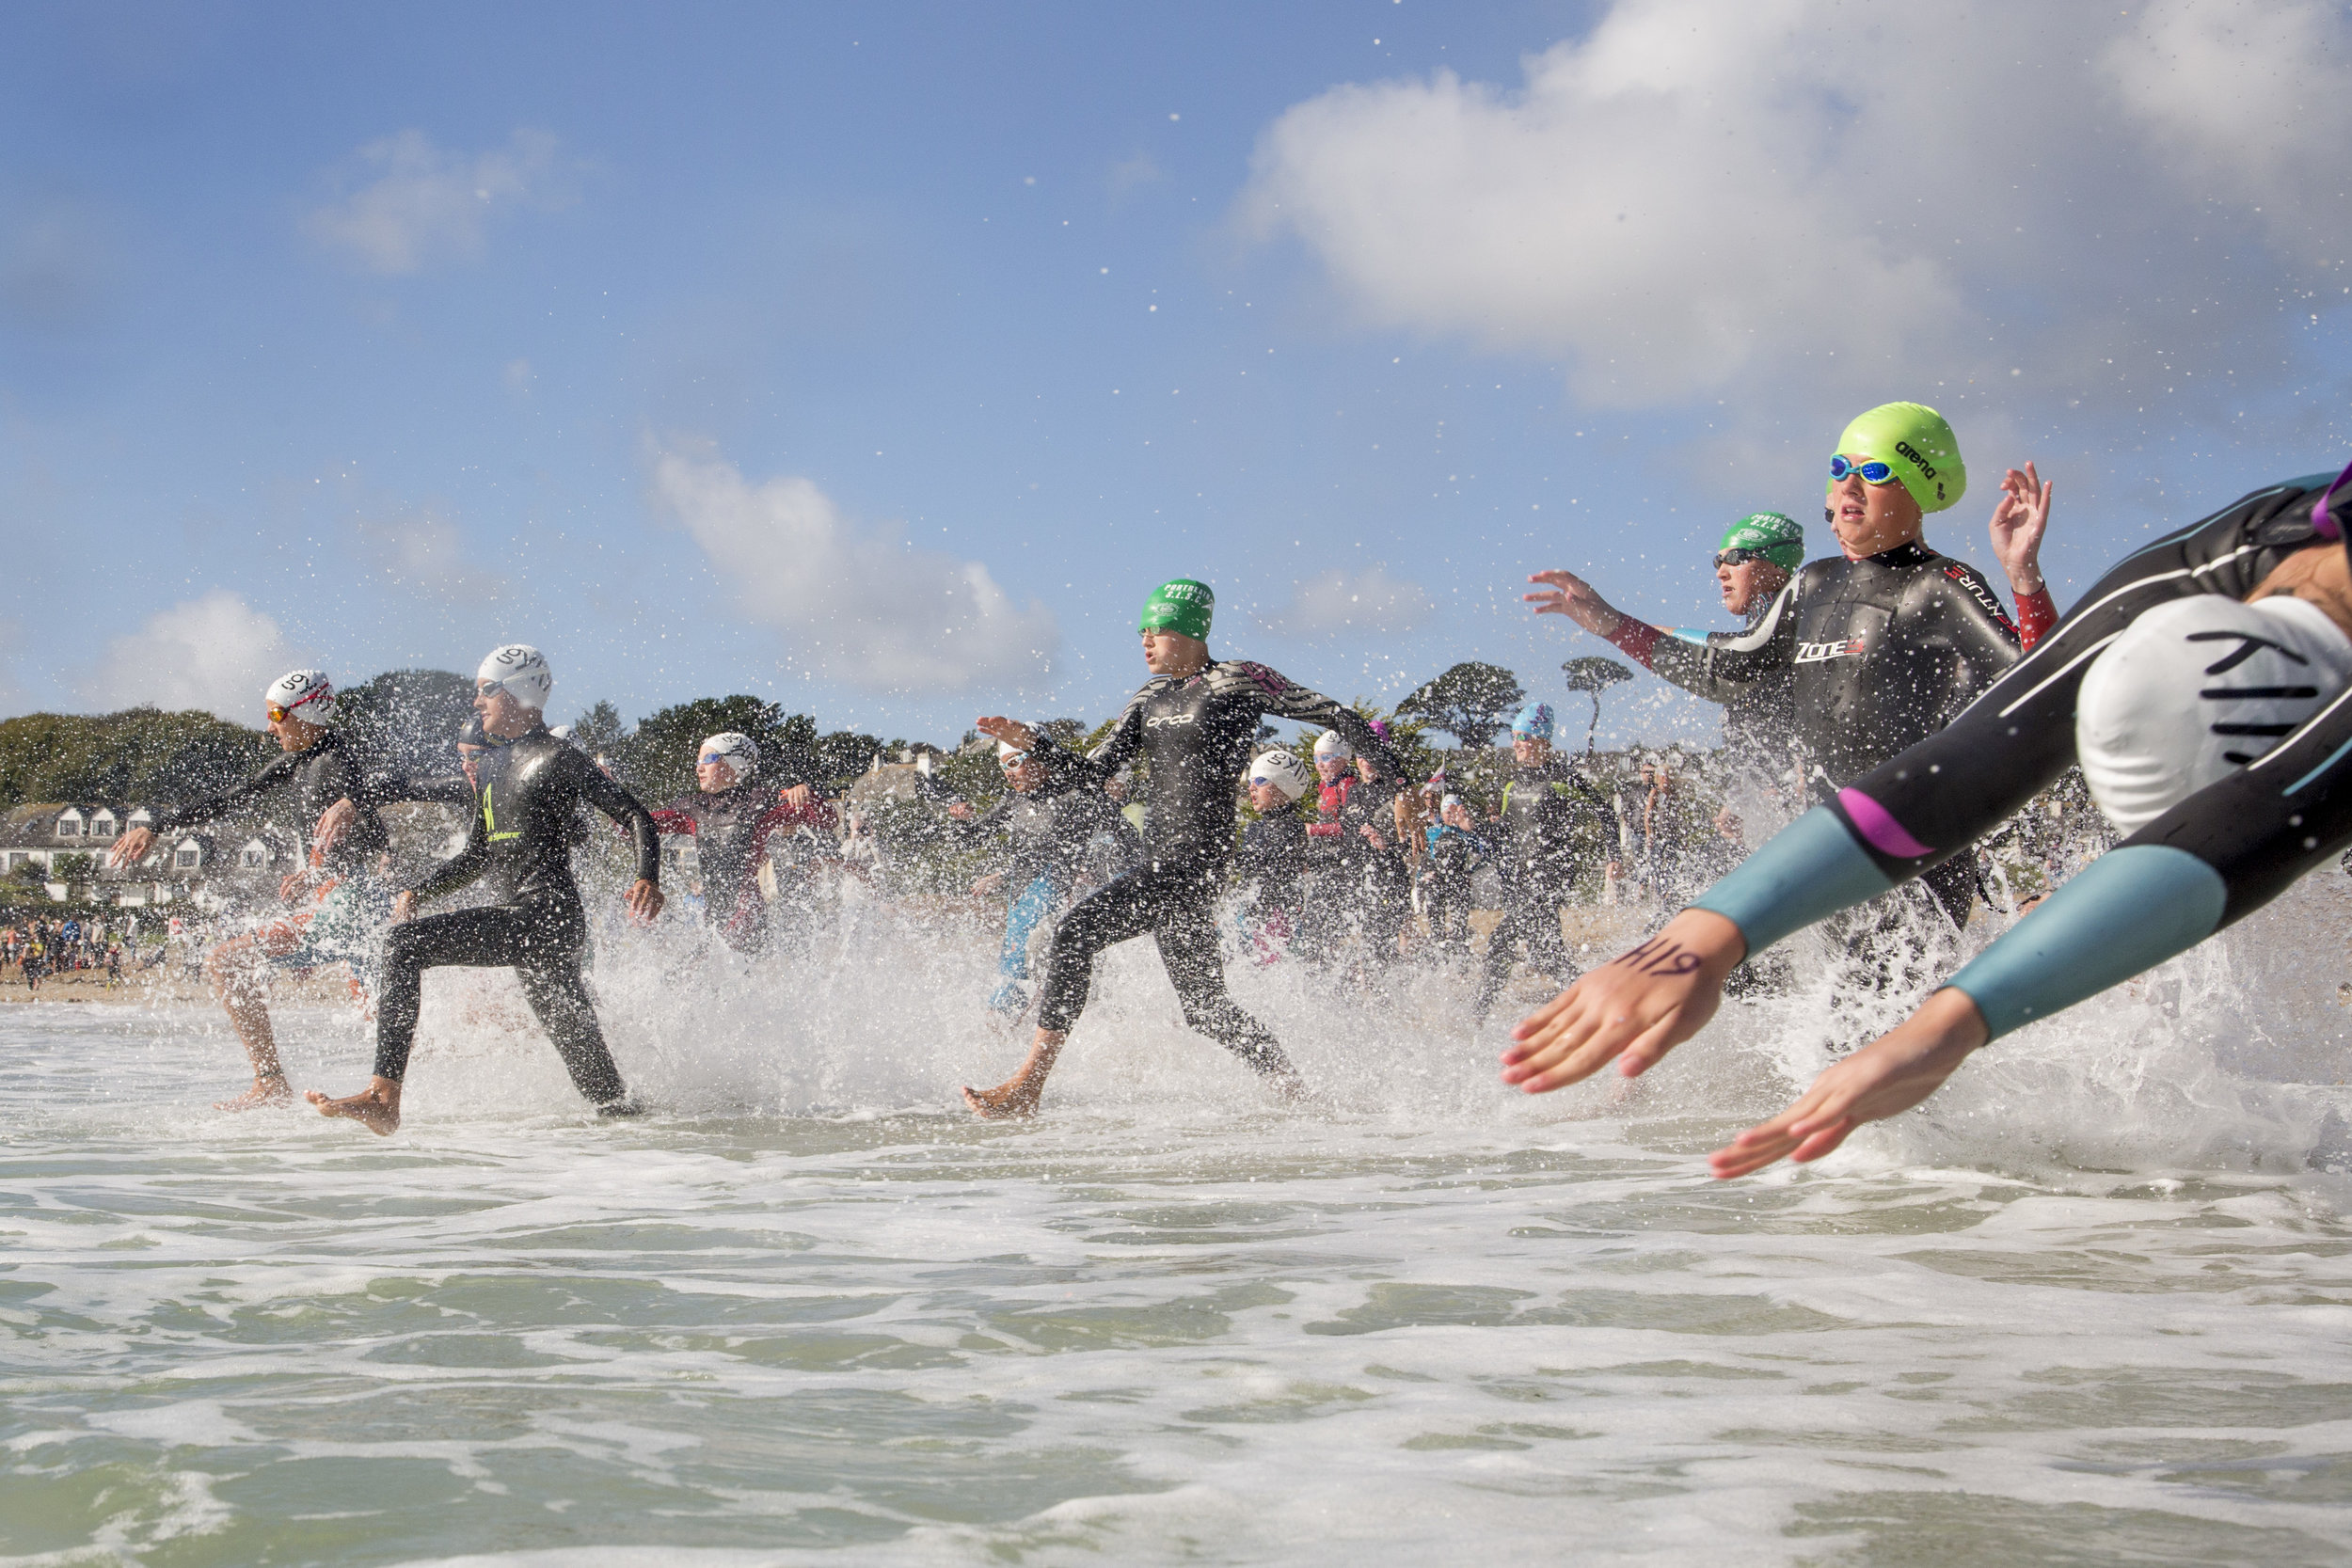 Gyllyngvase sea swimmers jumping of the start line.  Under 18 sea swimmers jumping of the start line at the Gyllyngvase   beach annual competitive swim. Gyllyngvase   beach, Falmouth, Cornwall, GB, 25/09/16